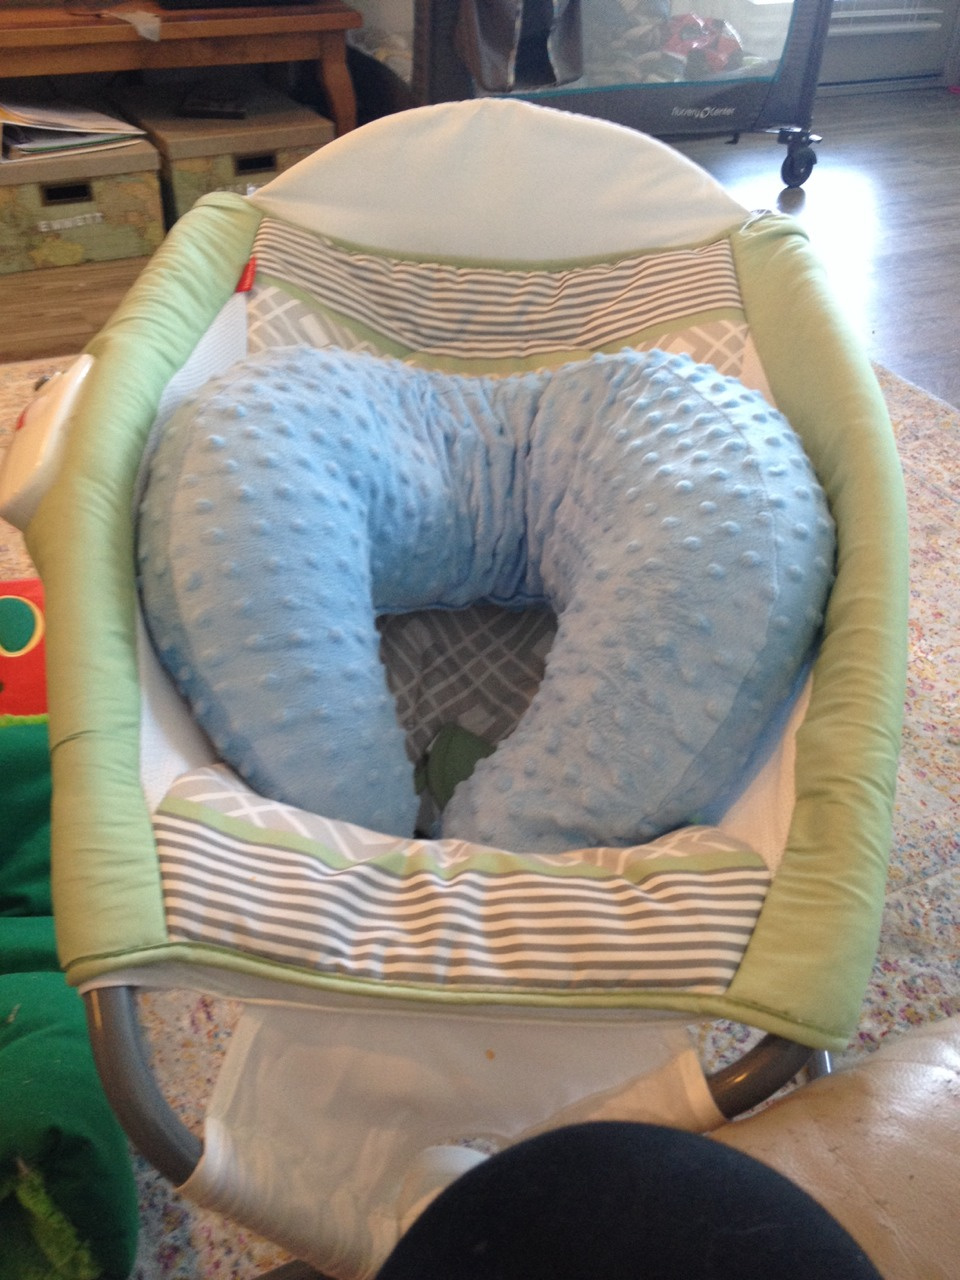 This is his Fisher Price portable sleeper. It has a panel on the side that had a vibration mode (that we don't use because it's over stimulating). Inside it we have place his rounded nursing pillow, which we bought online. It's smaller and softer than a Boppy brand.